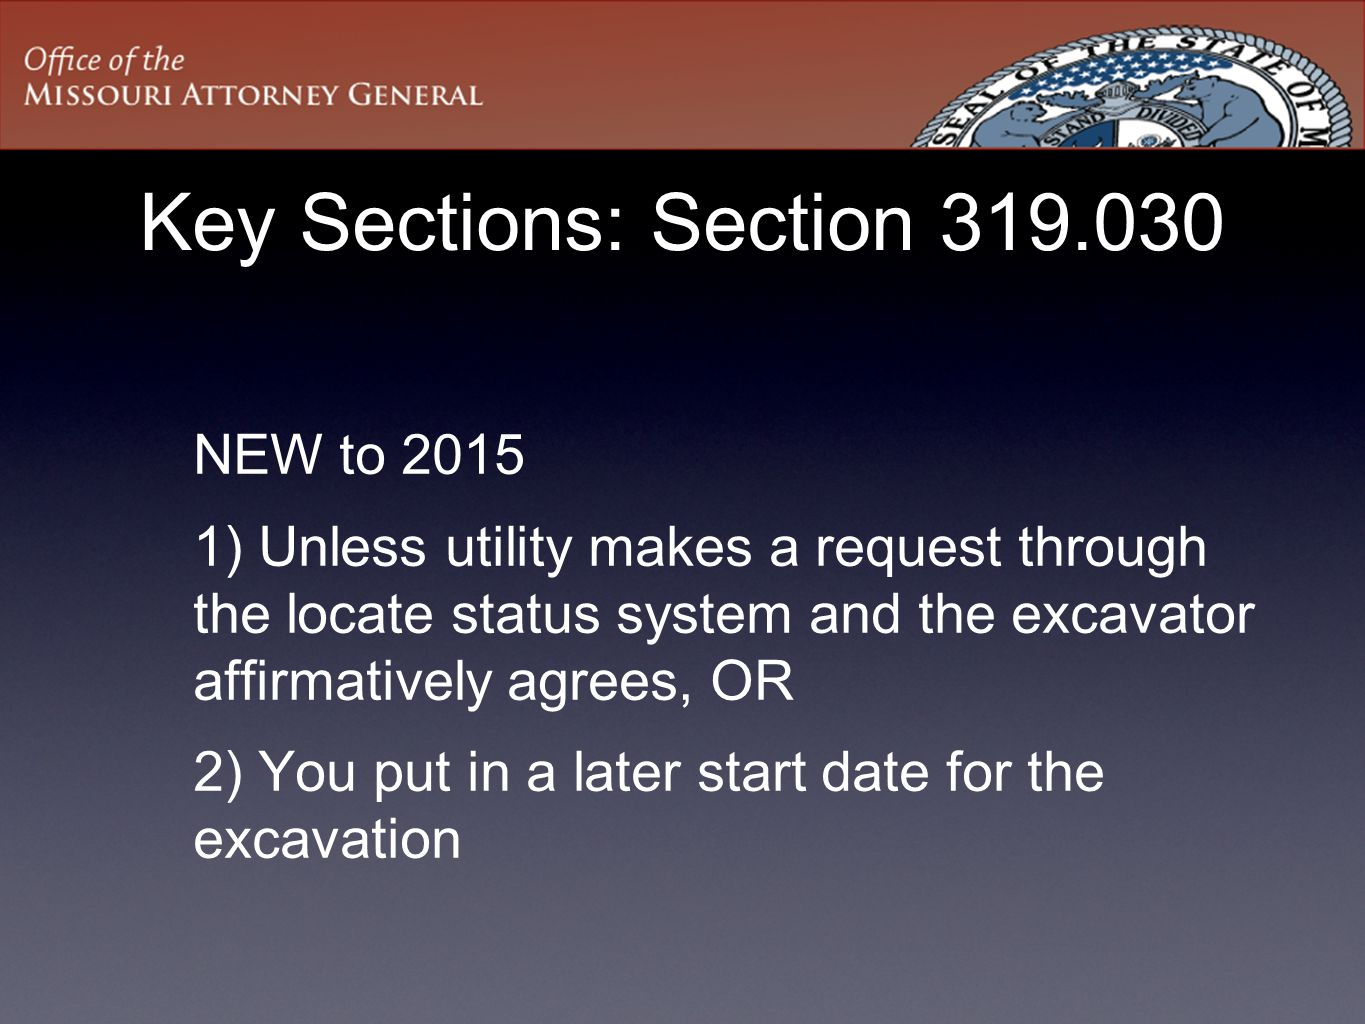 Key Sections: Section 319.030